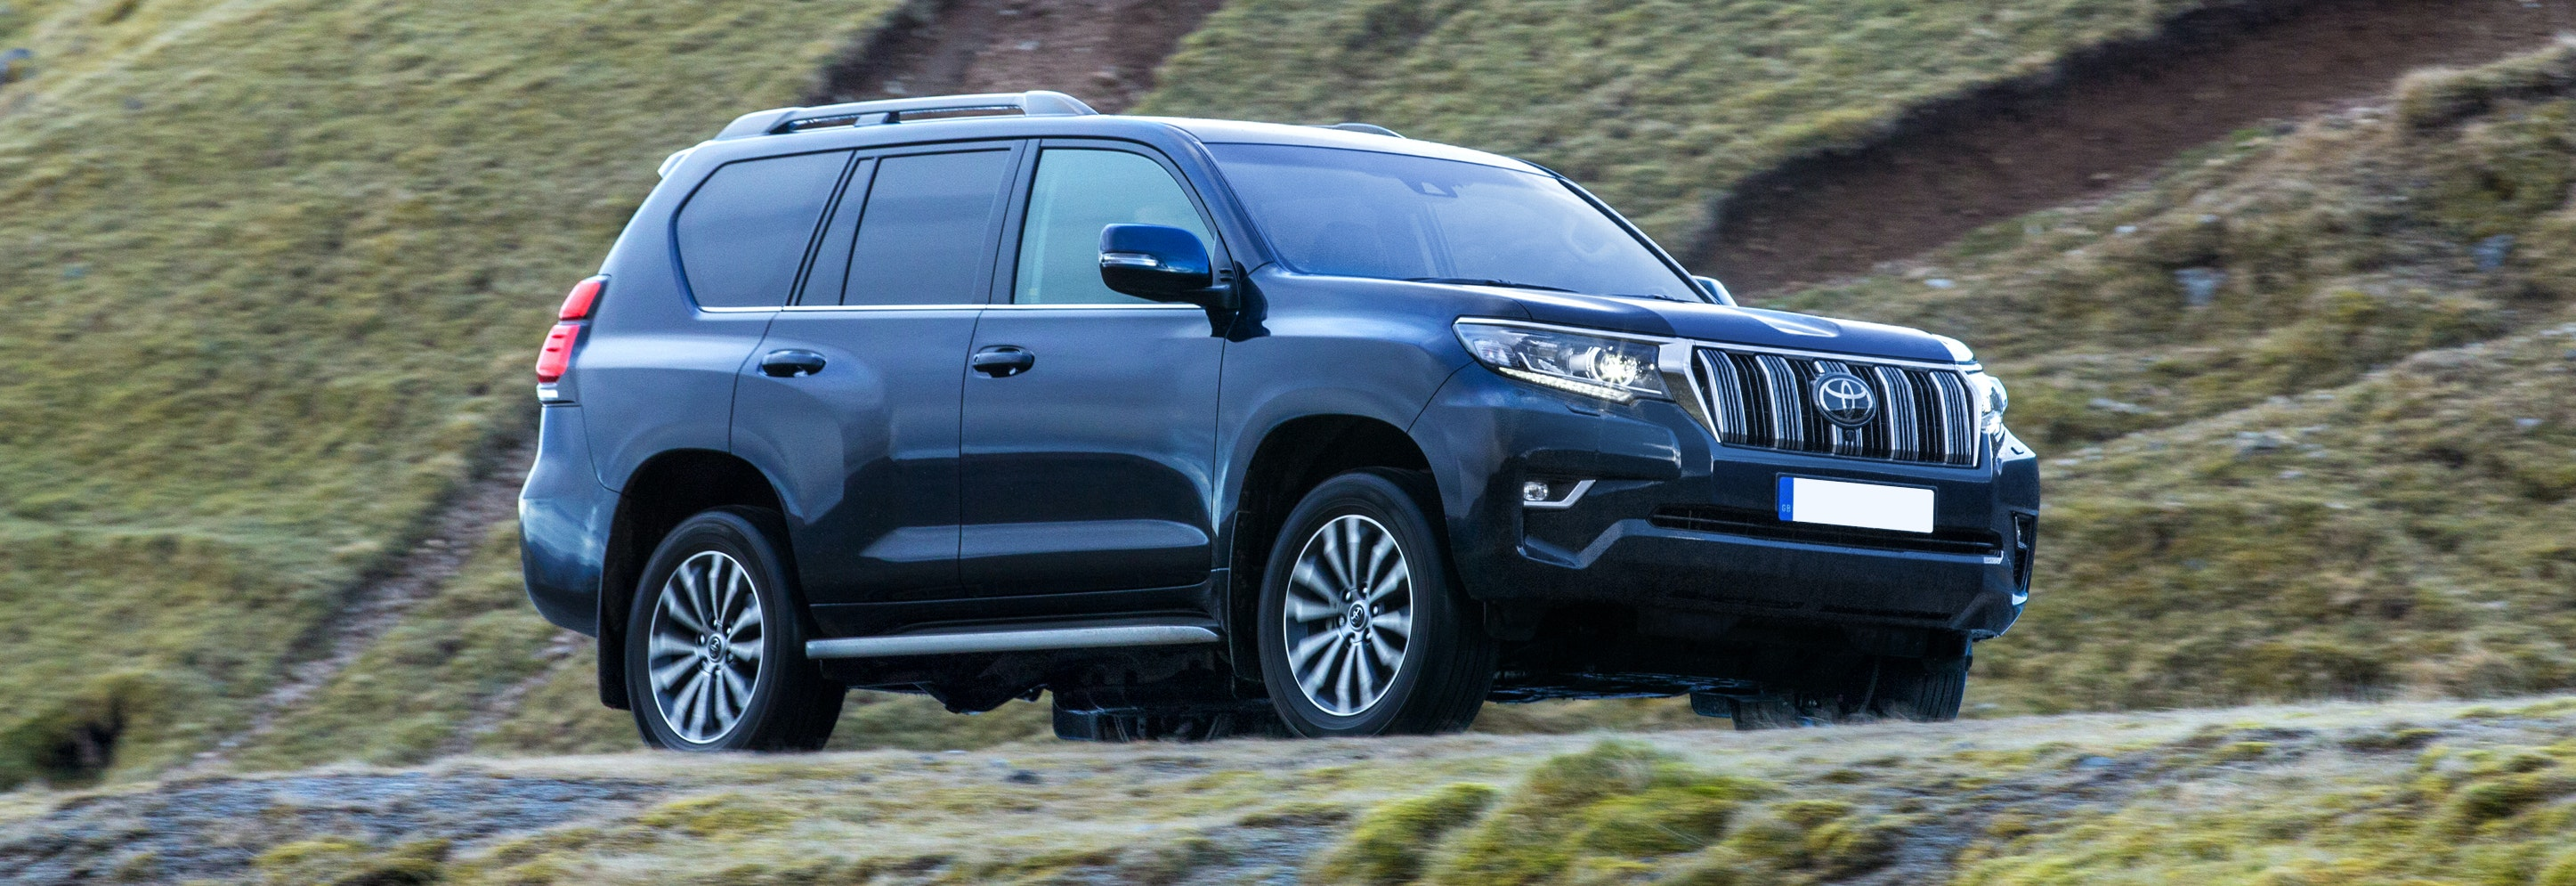 2018 toyota land cruiser blue driving front